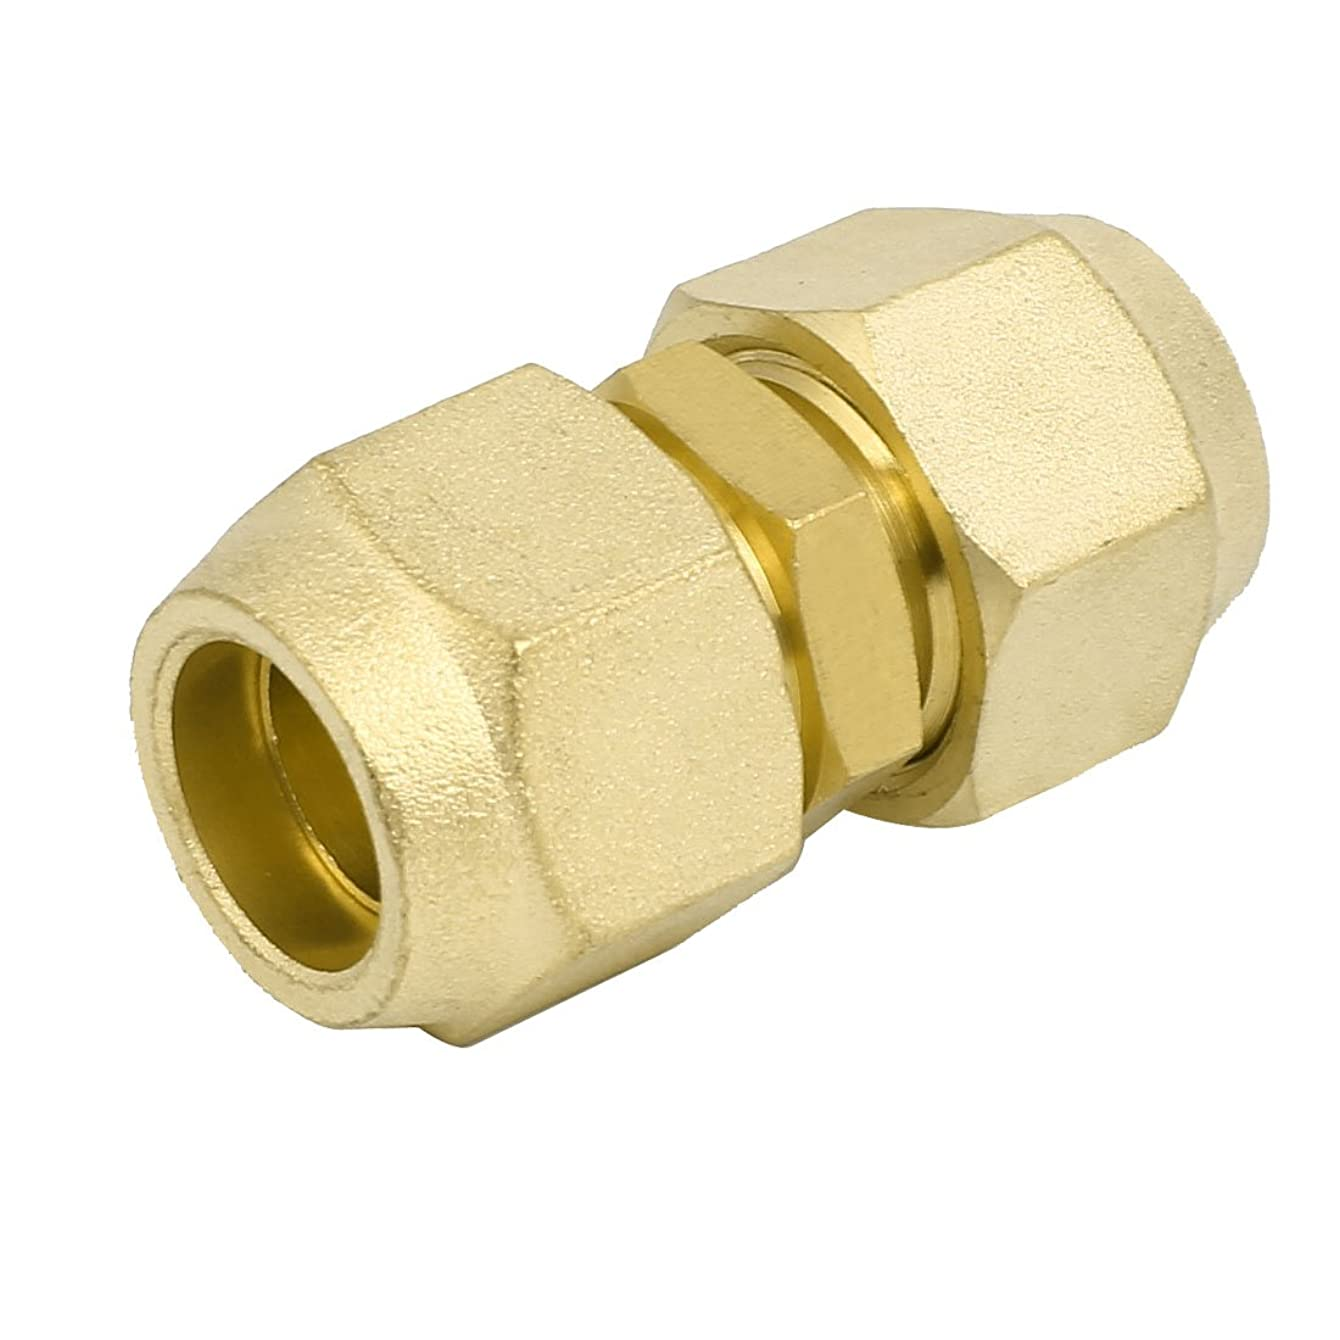 Aexit 3/4BSP Double Civil Equipment Hardware Accessories Brass Flare Nut Air Conditioner Part Fitting for 3/4